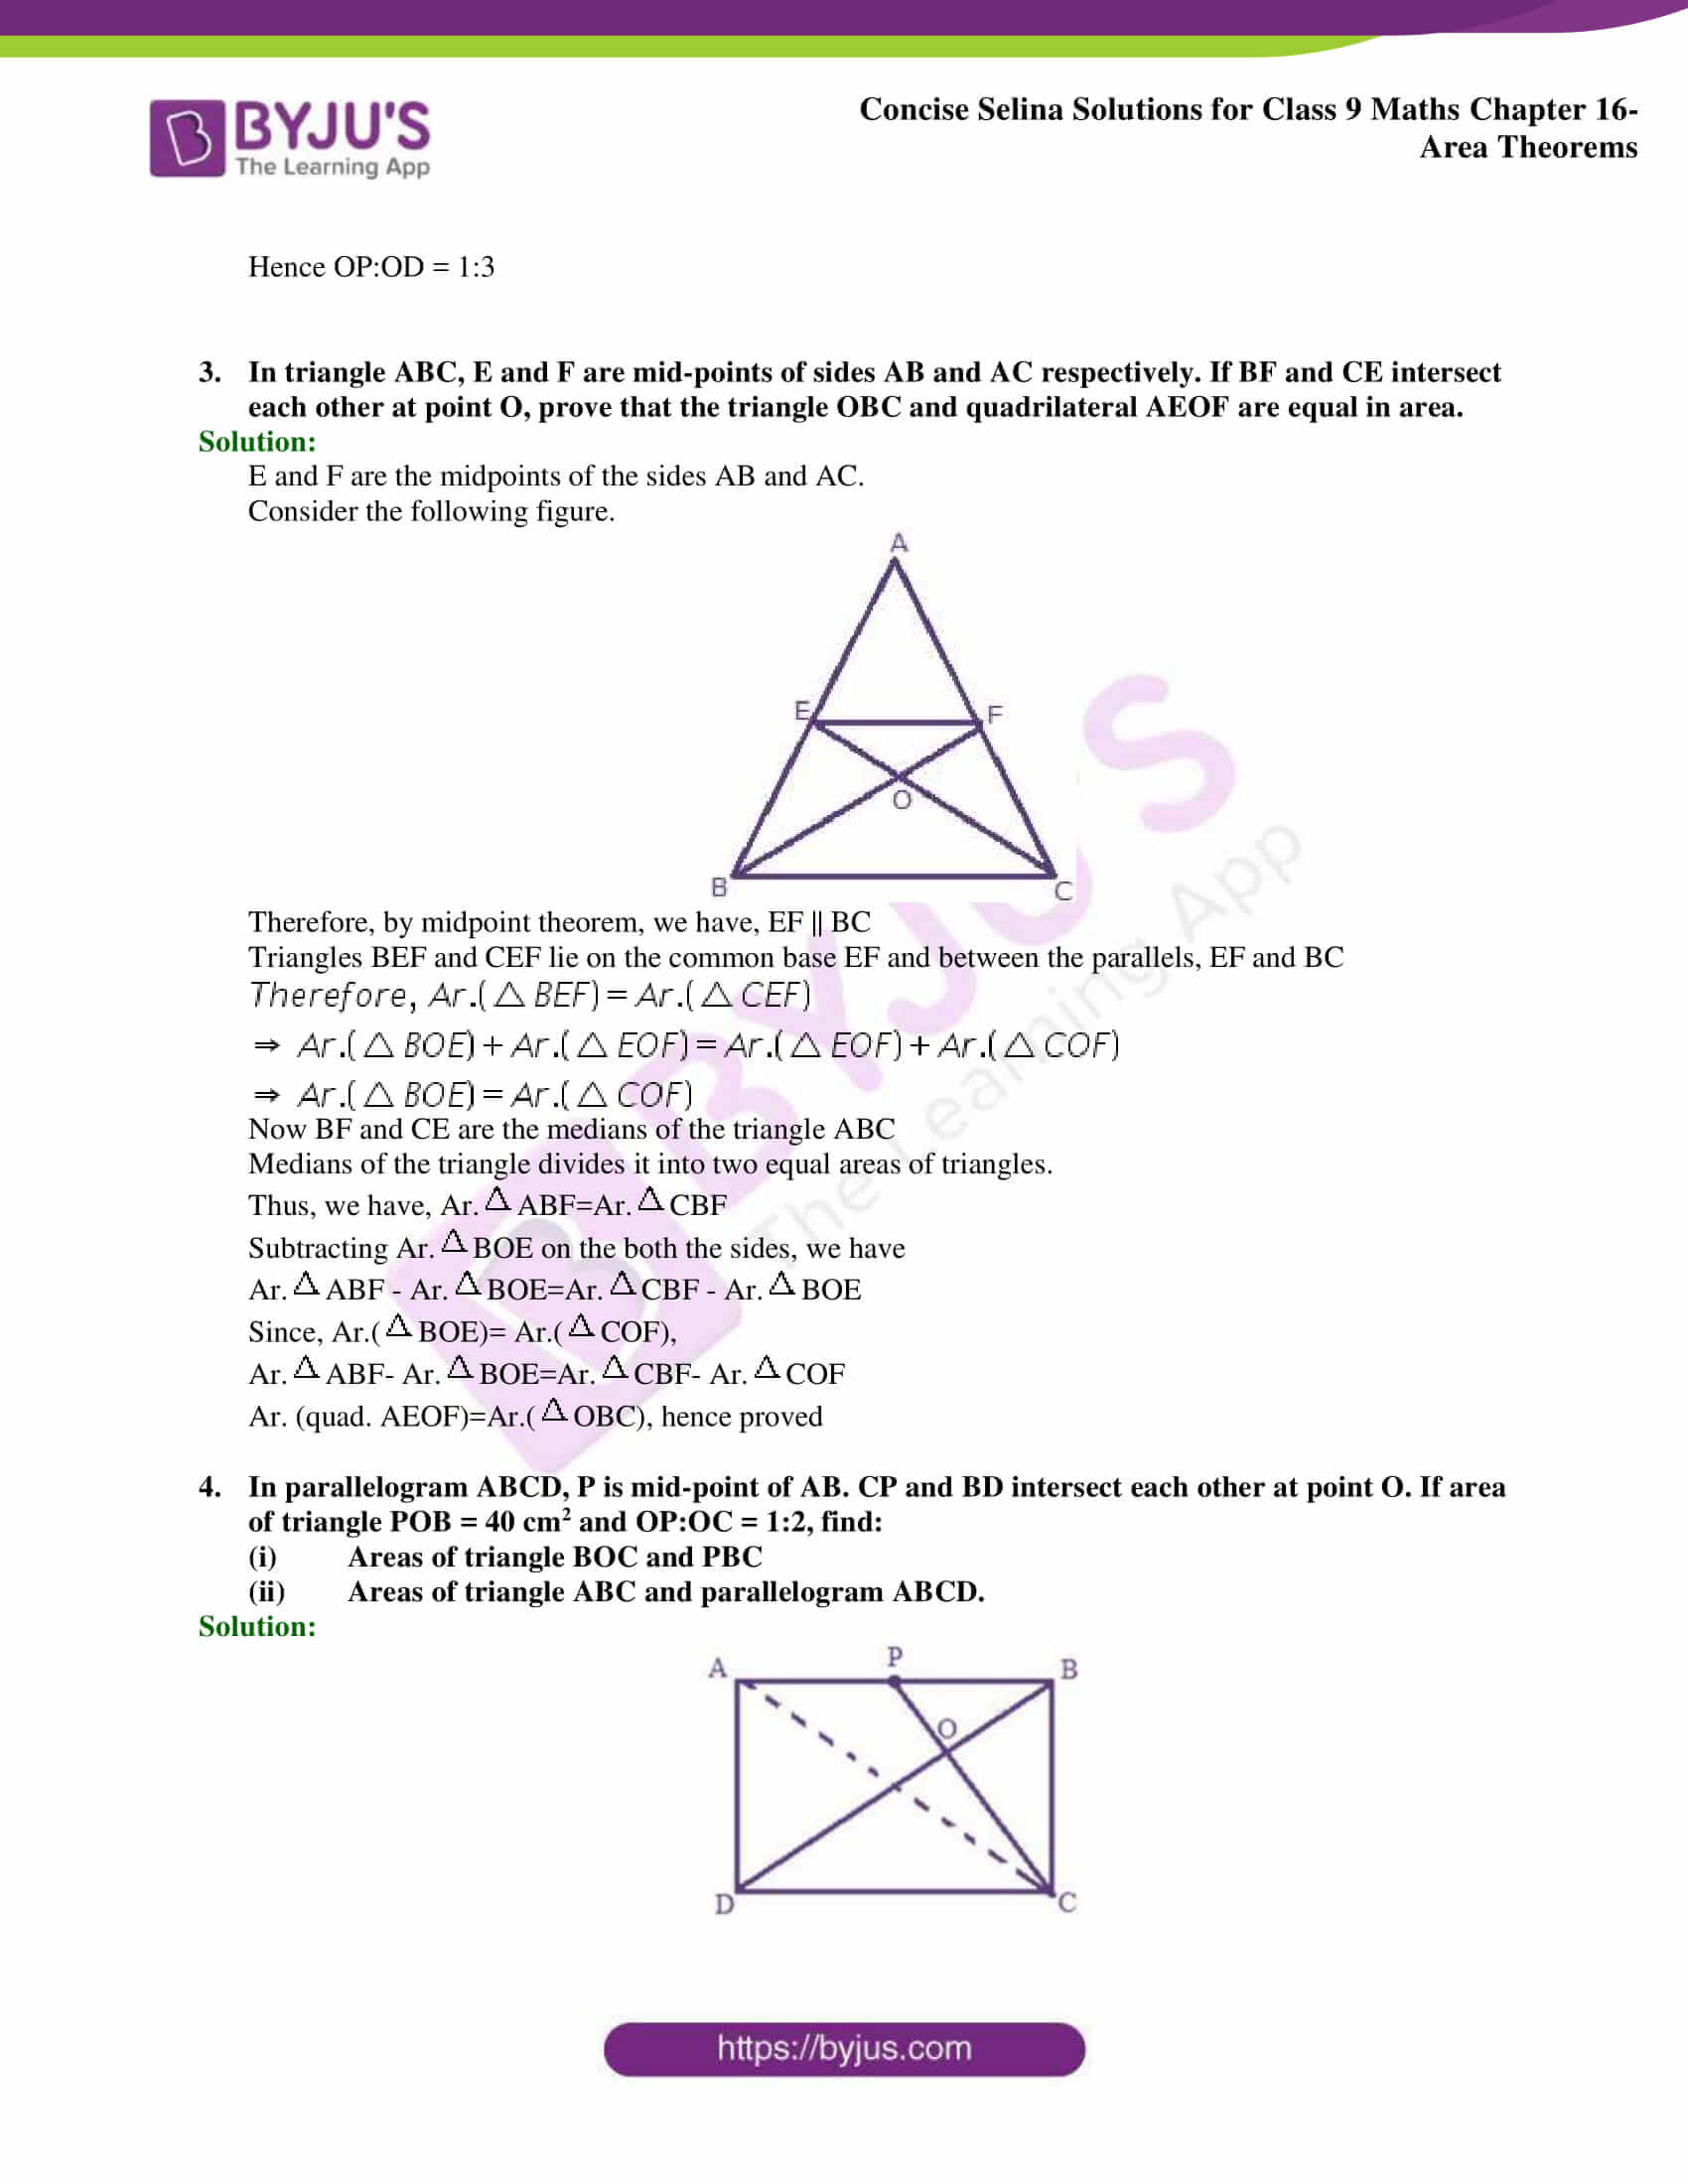 Concise Selina Solutions Class 9 Maths Chapter 16 Area Theorems part 25